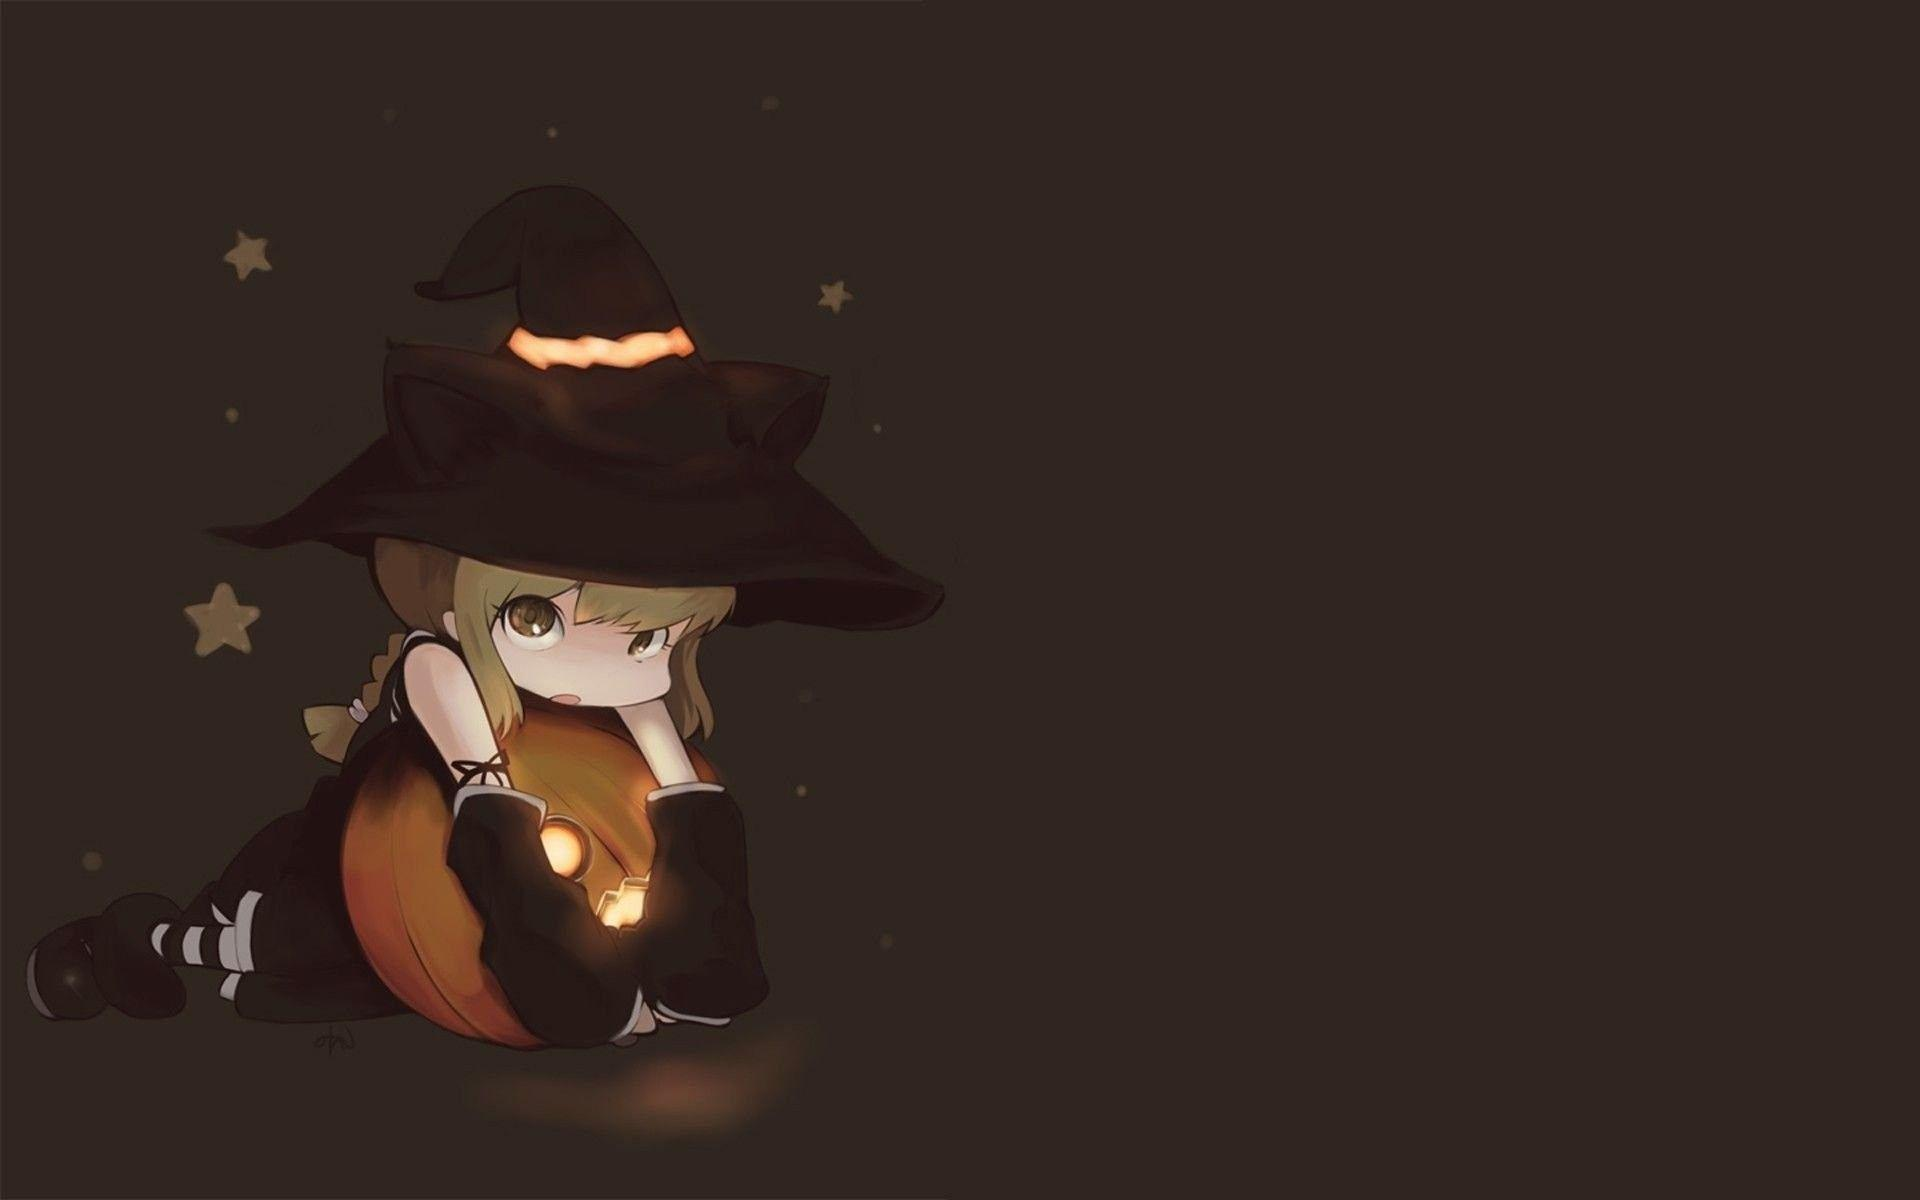 Cute Halloween Anime Girl Wallpapers Wallpaper Cave